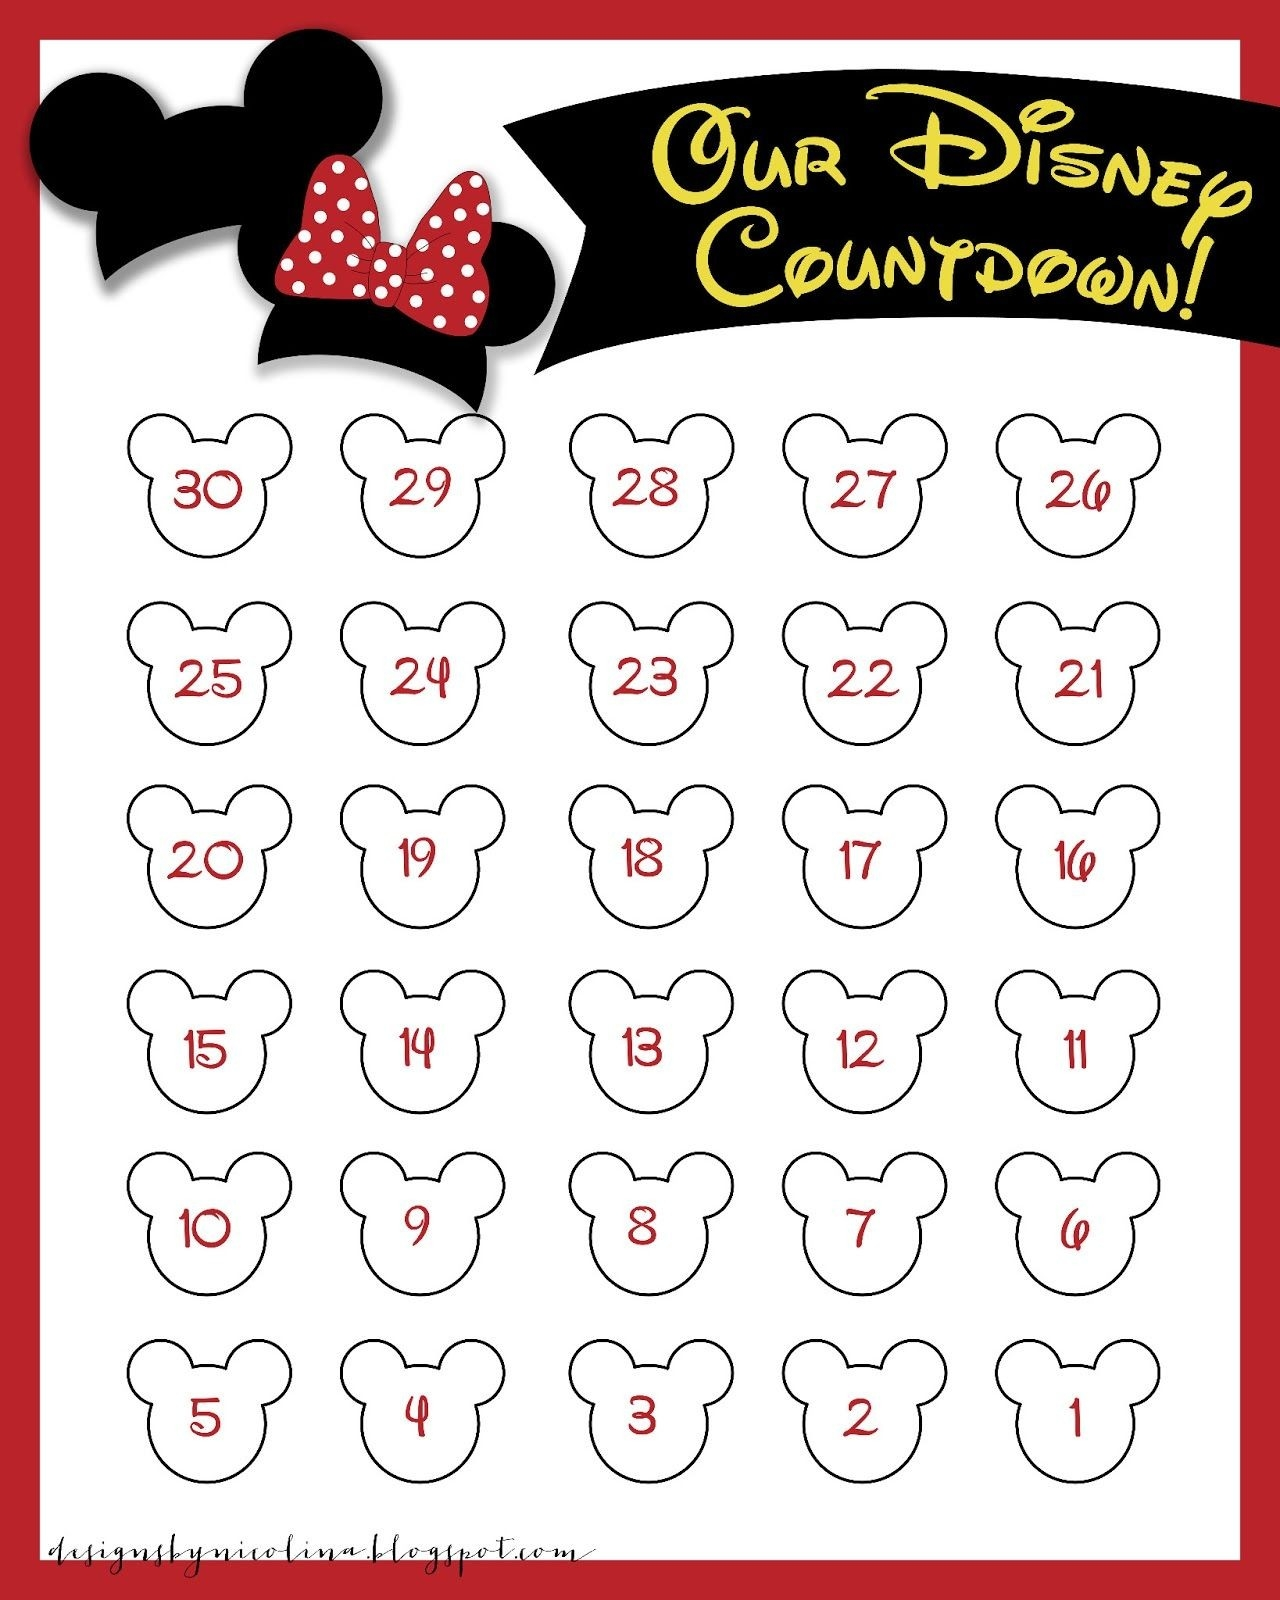 Disneyland Countdown Calendar | Designs By Nicolina: Disney-Countdown To Disney Template